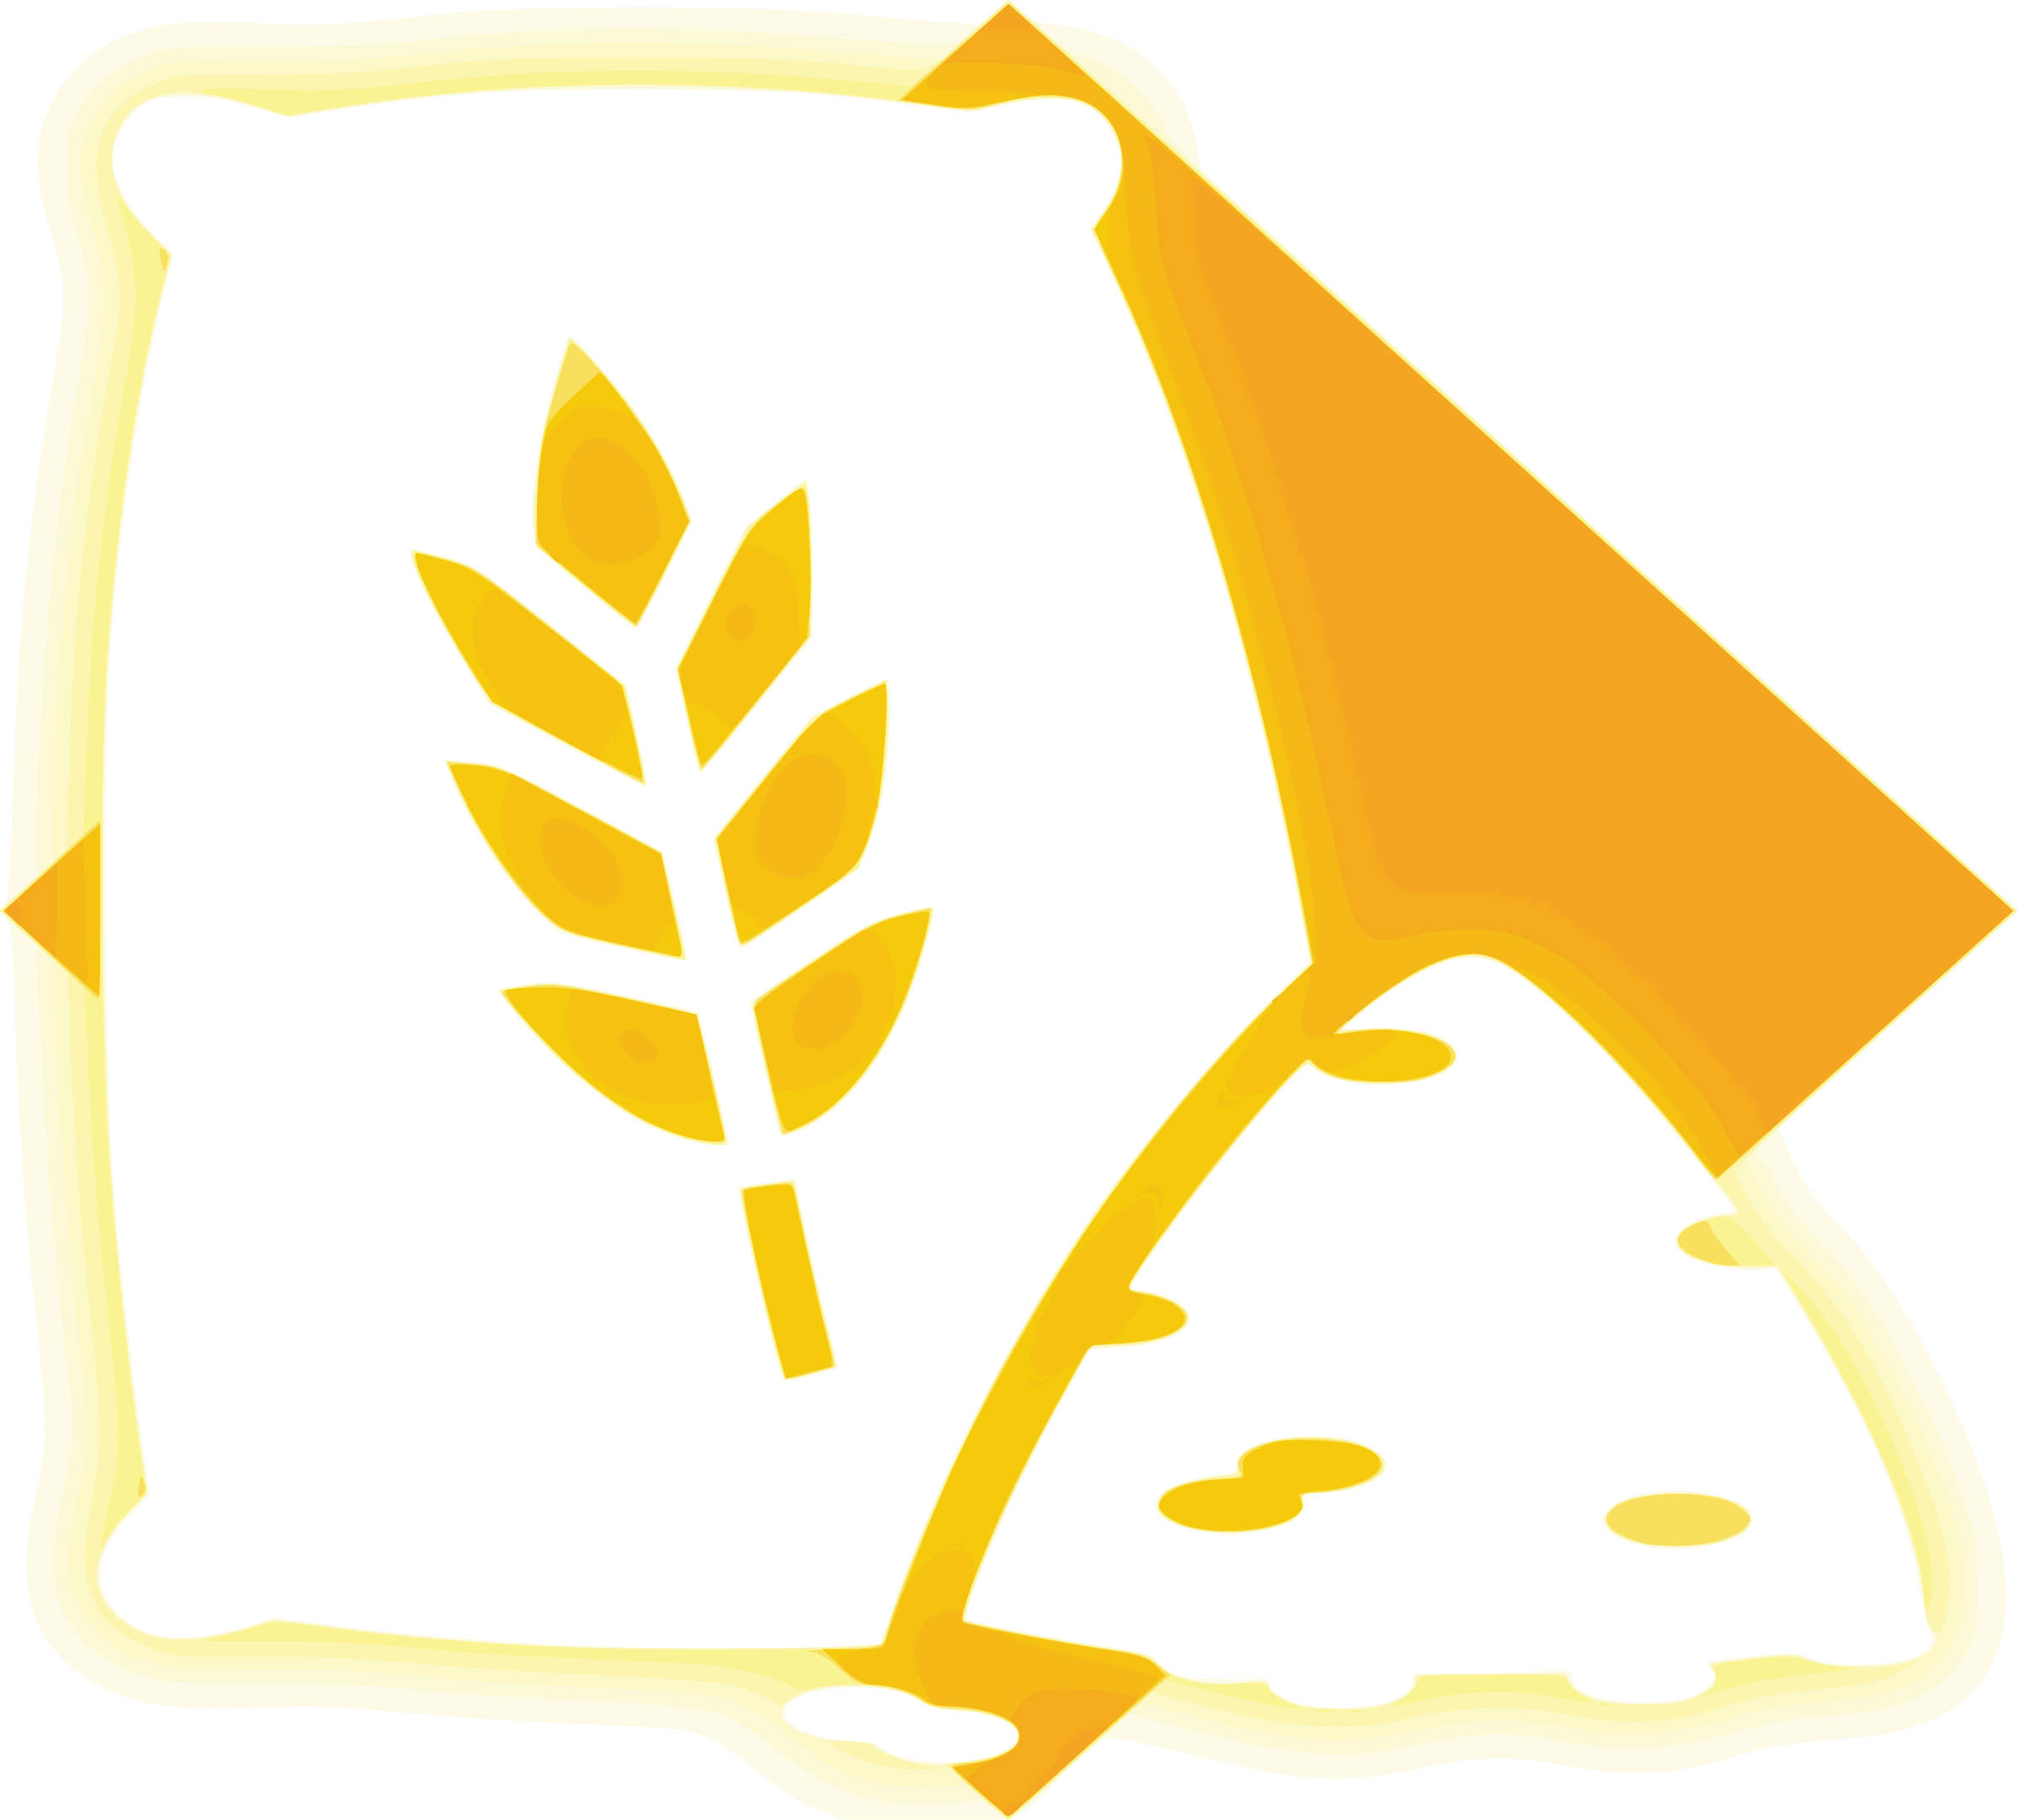 Grain icons png free. Wheat clipart icon